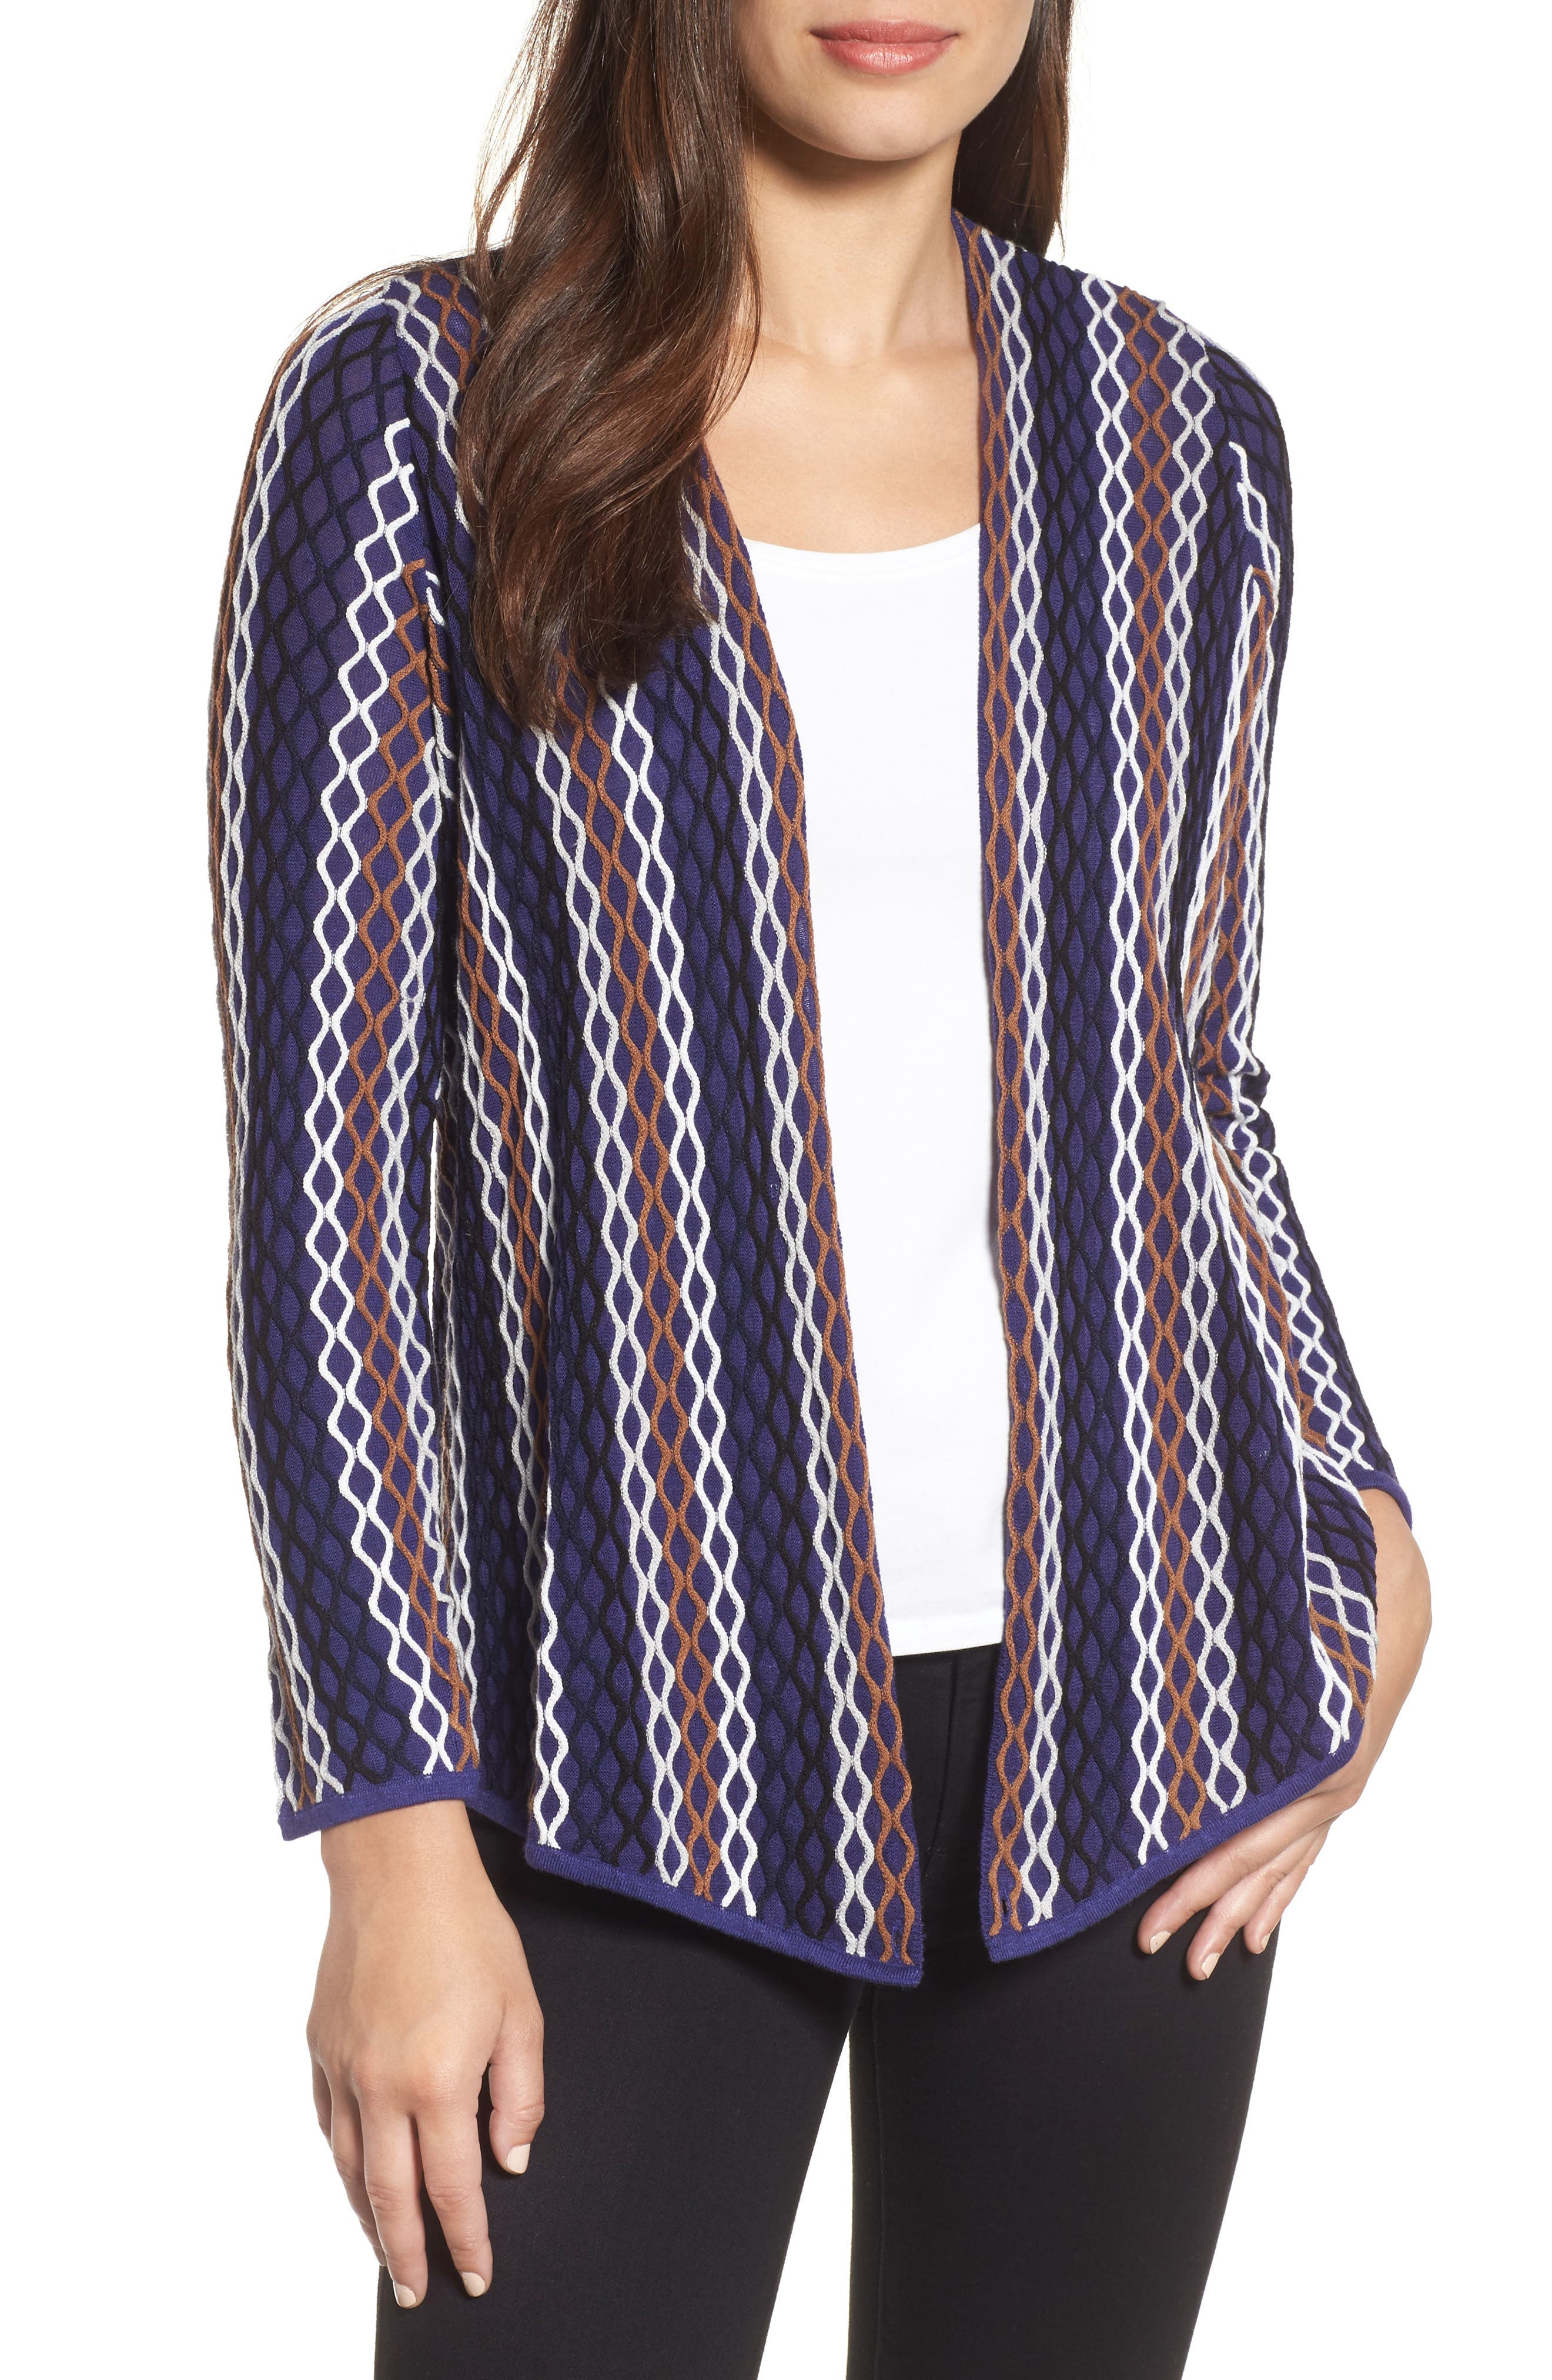 NIC+ ZOE Squiggled Up 4-Way Convertible Cardigan,                         Main,                         color, Blue Multi